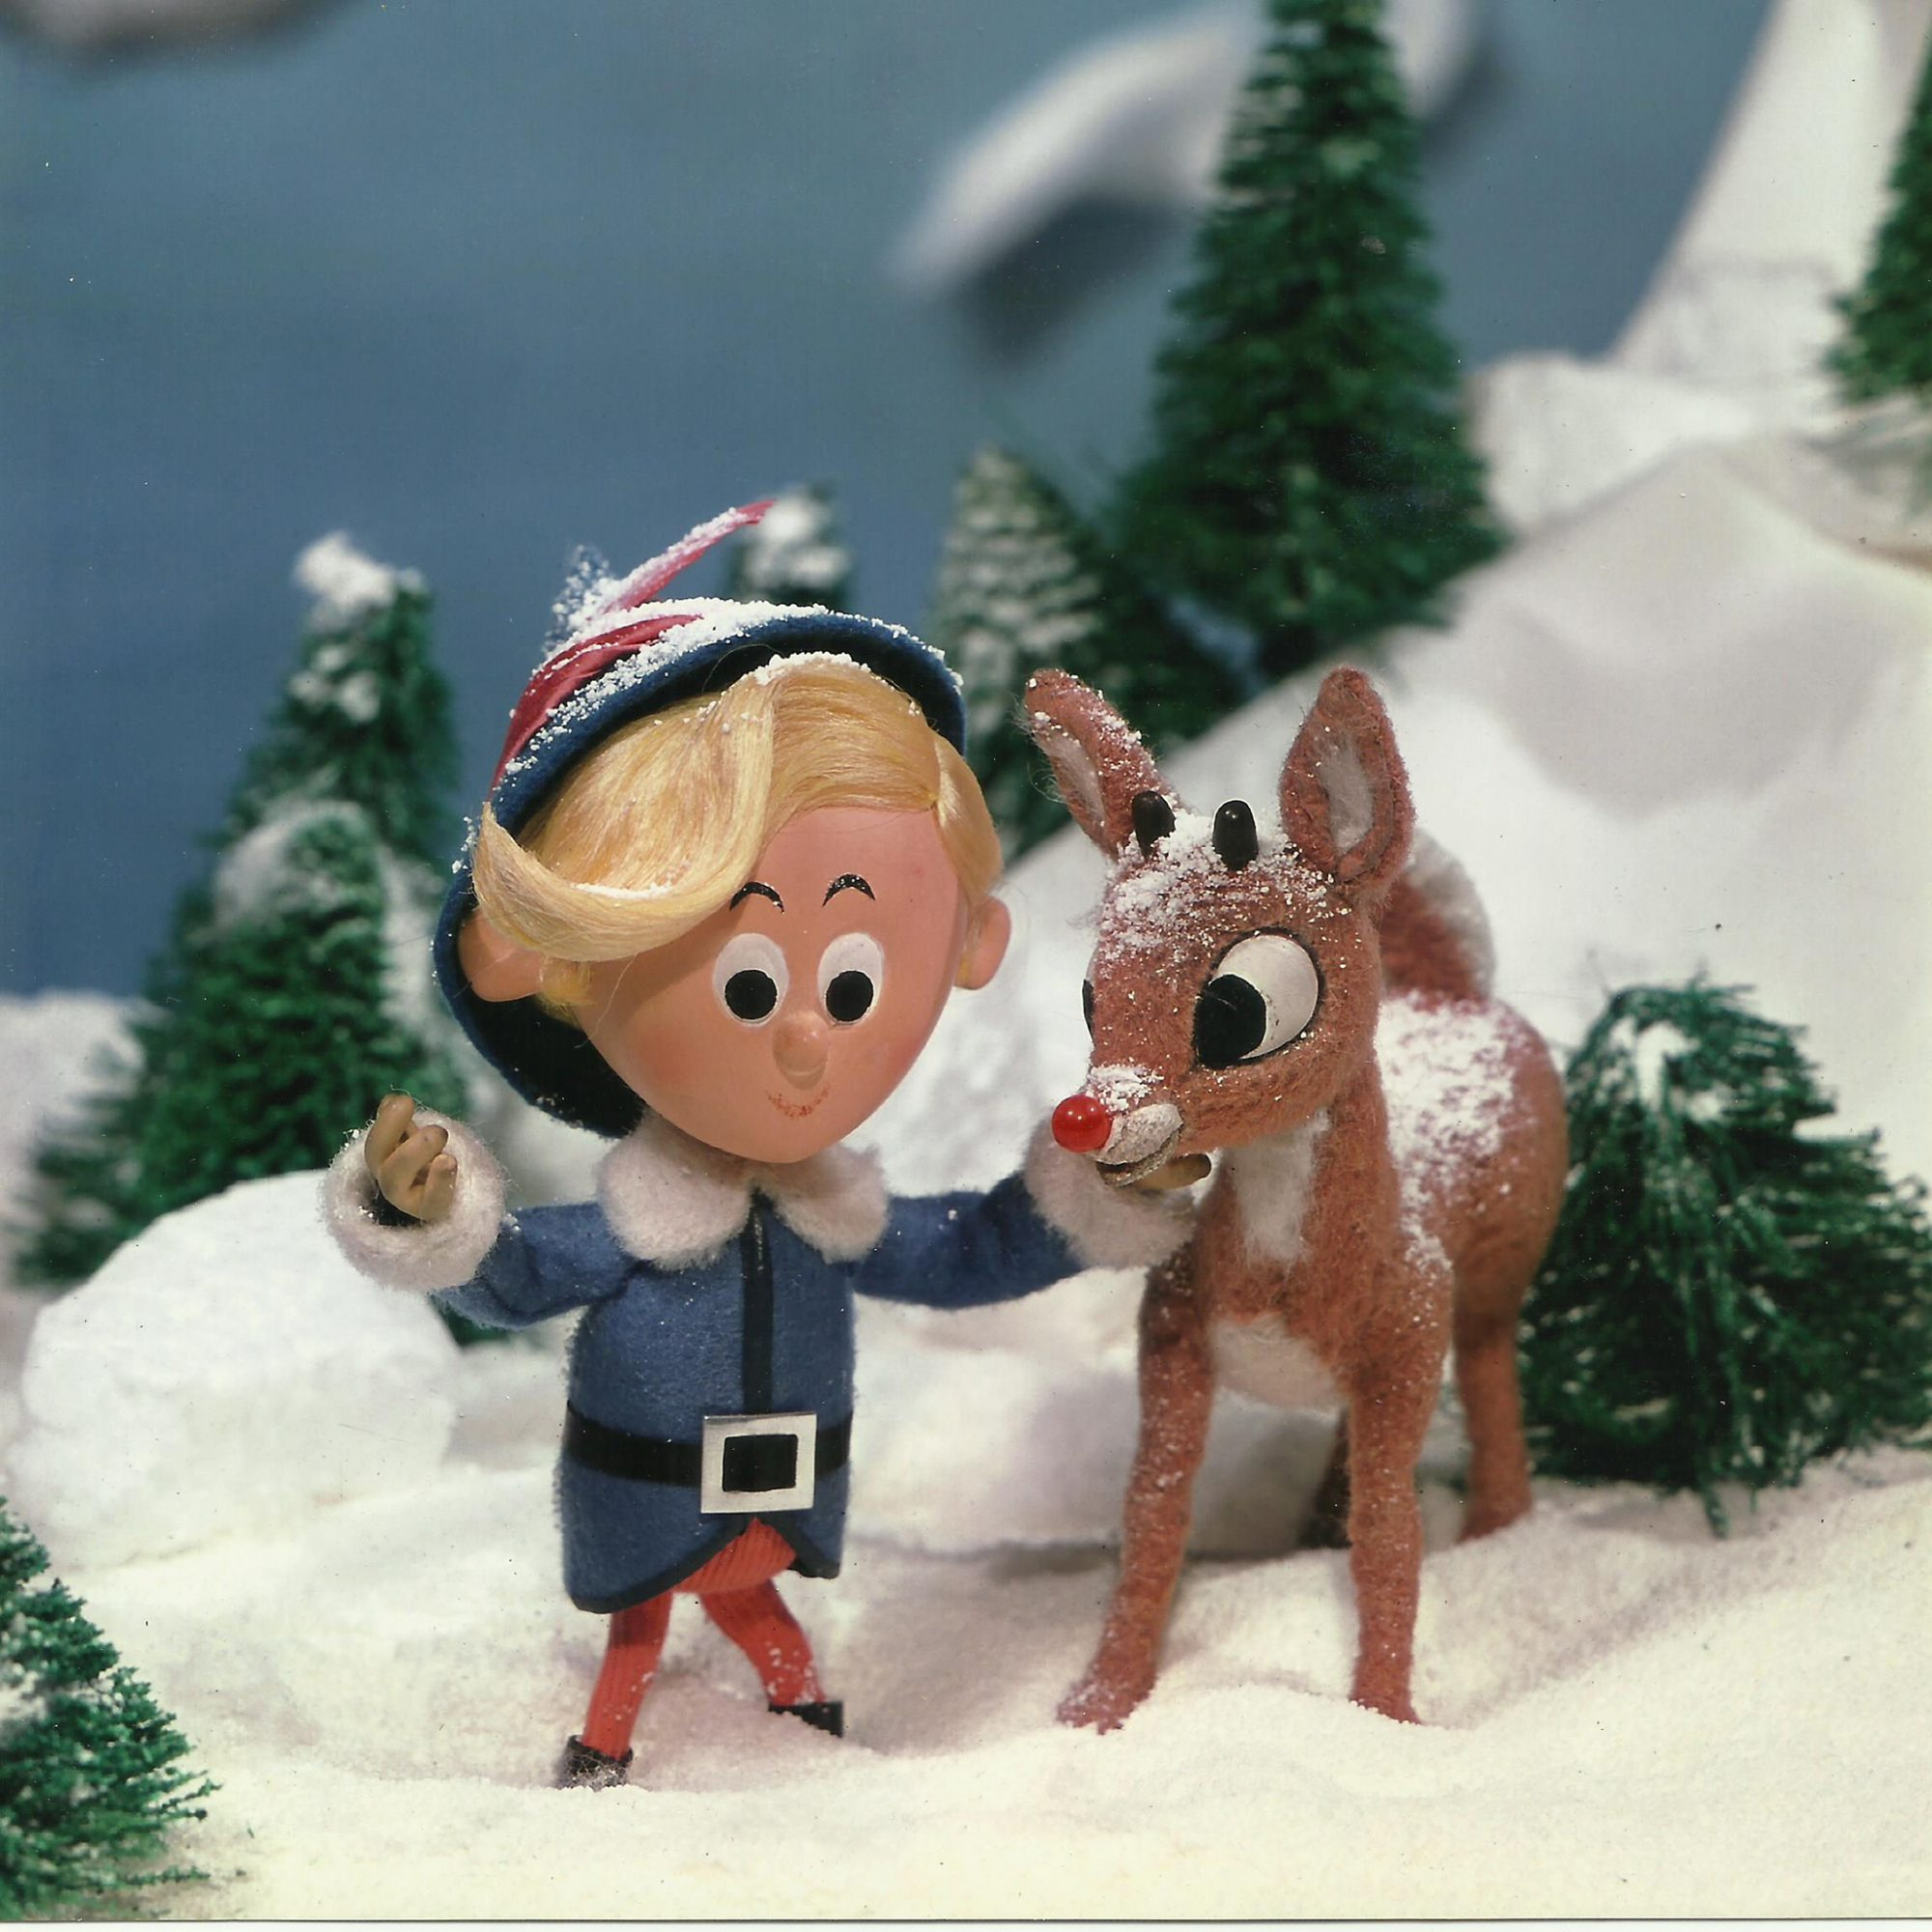 FWX DEFINITIVE RANKING OF RANKING BASS MOVIES RUDOLPH THE RED NOSED REINDEER